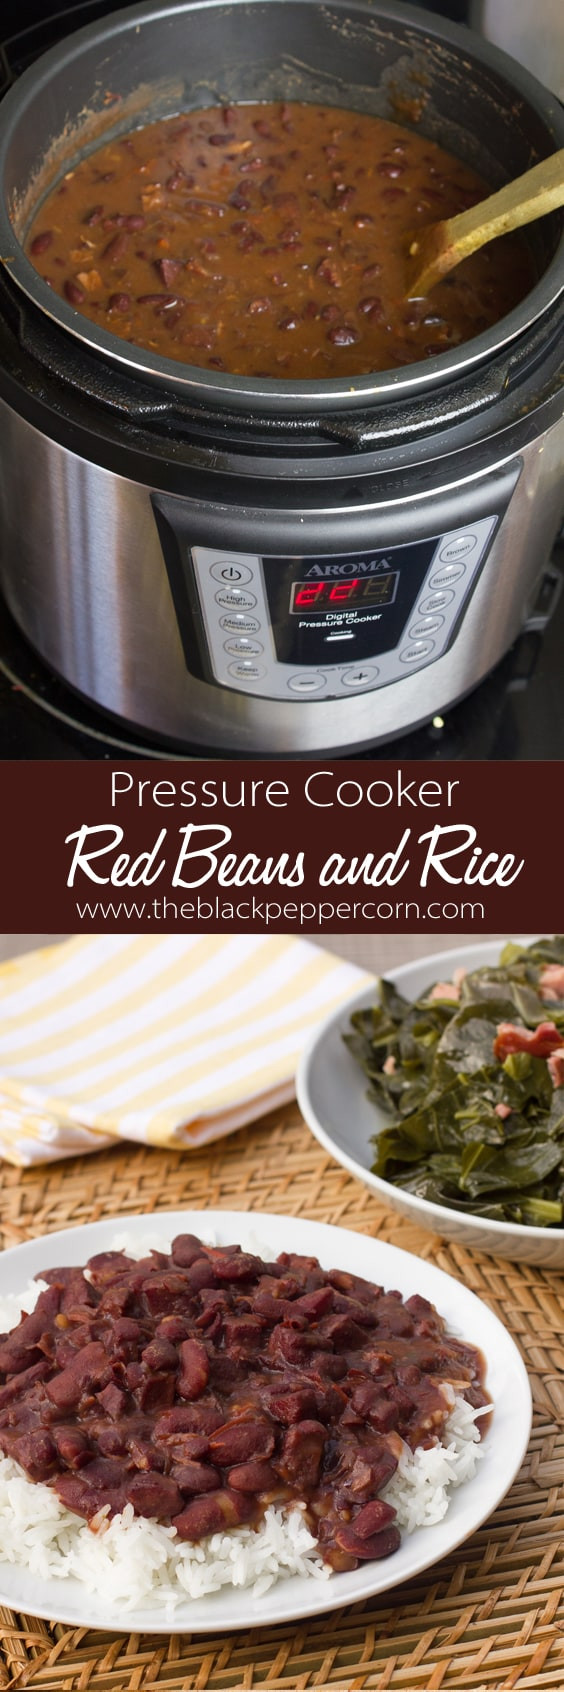 Red Beans And Rice Pressure Cooker  Red Beans and Rice Pressure Cooker Recipe Instant Pot